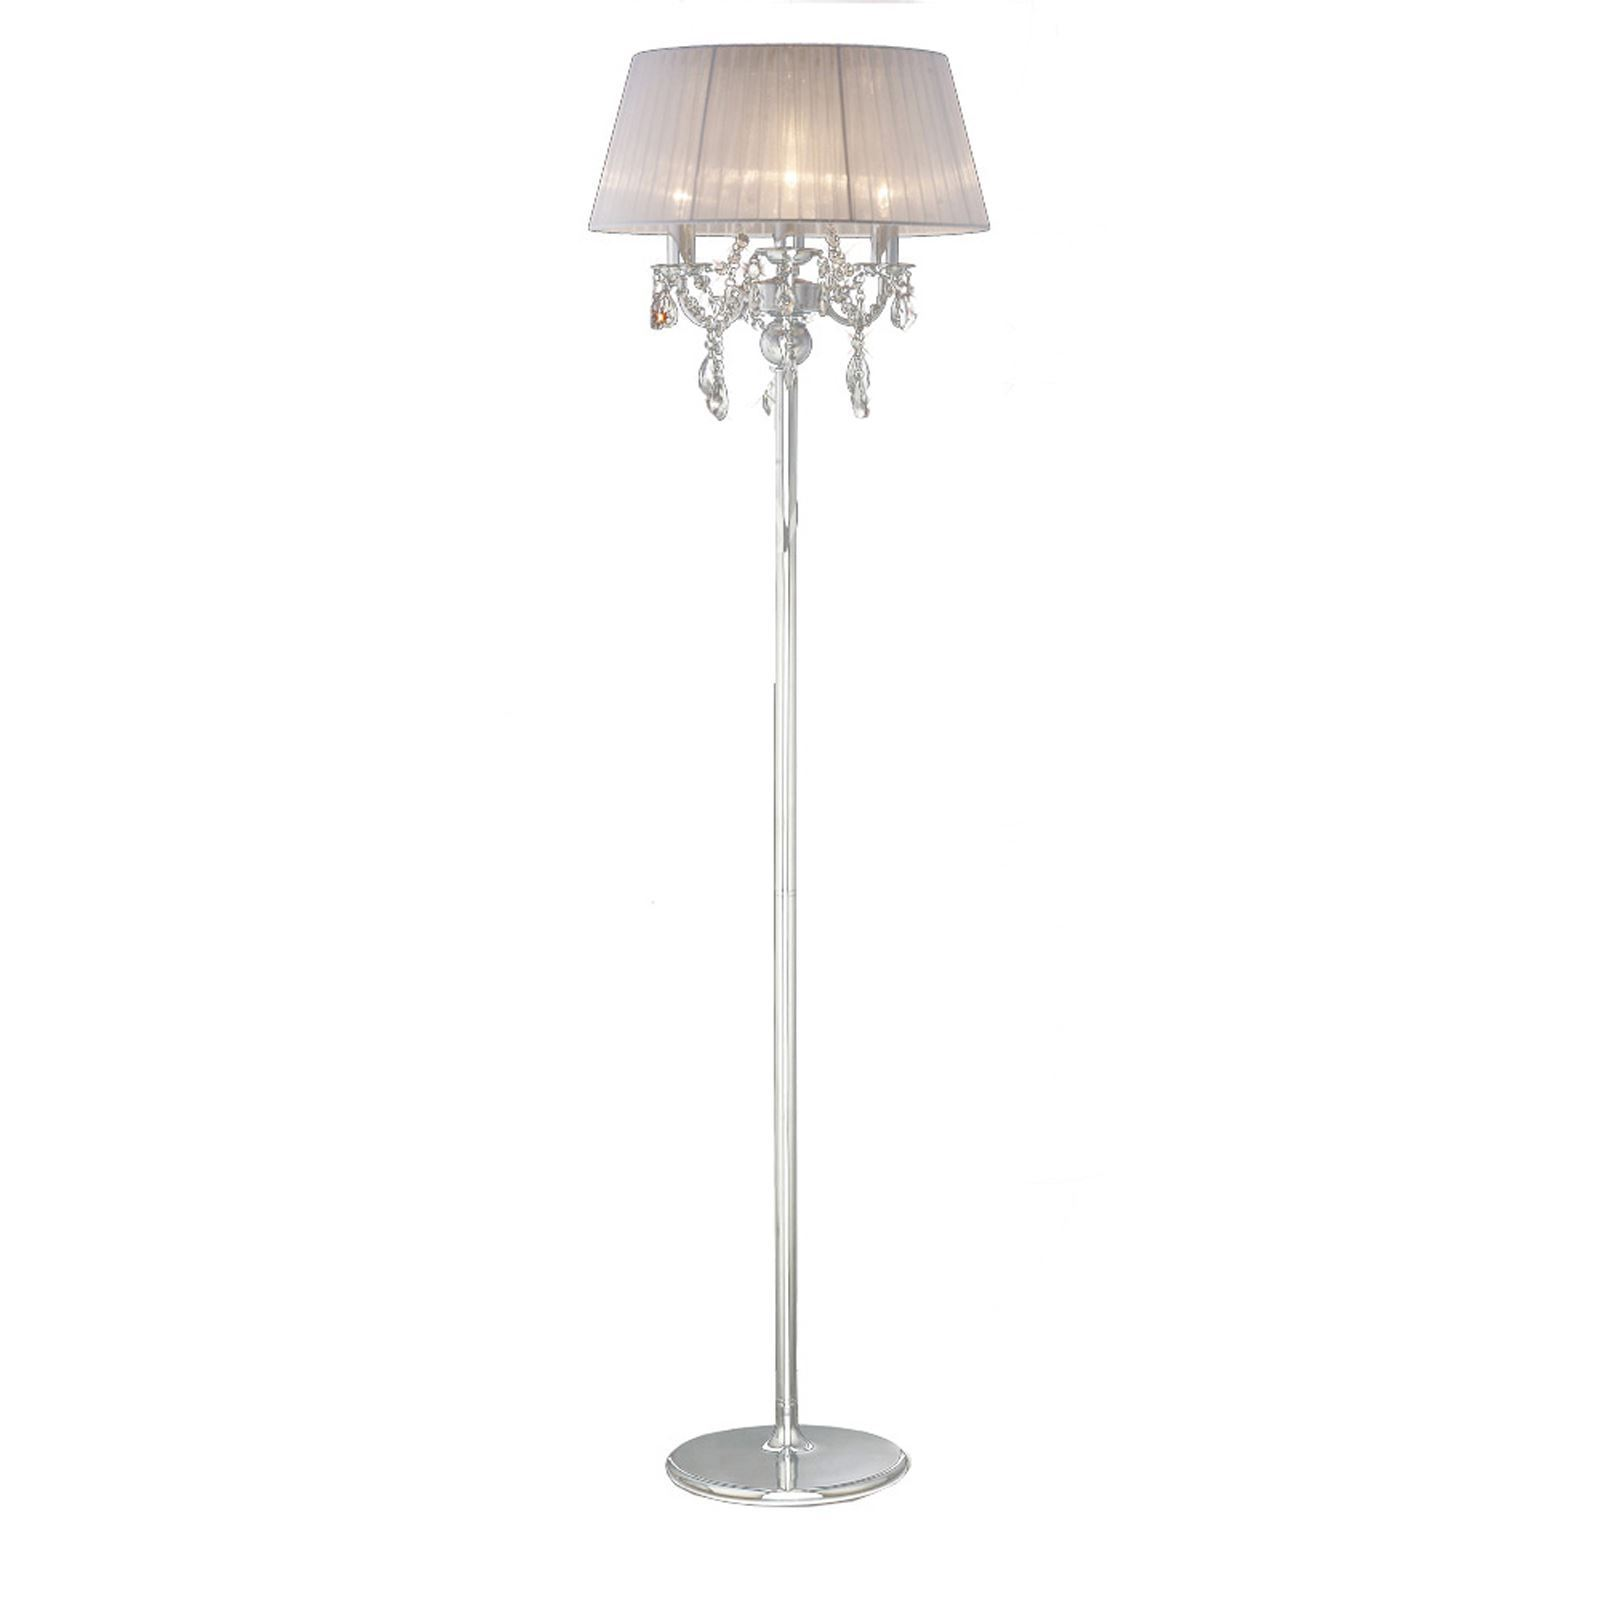 Decorative Olivia Floor Lamp With White Shade 3 Light Crystal